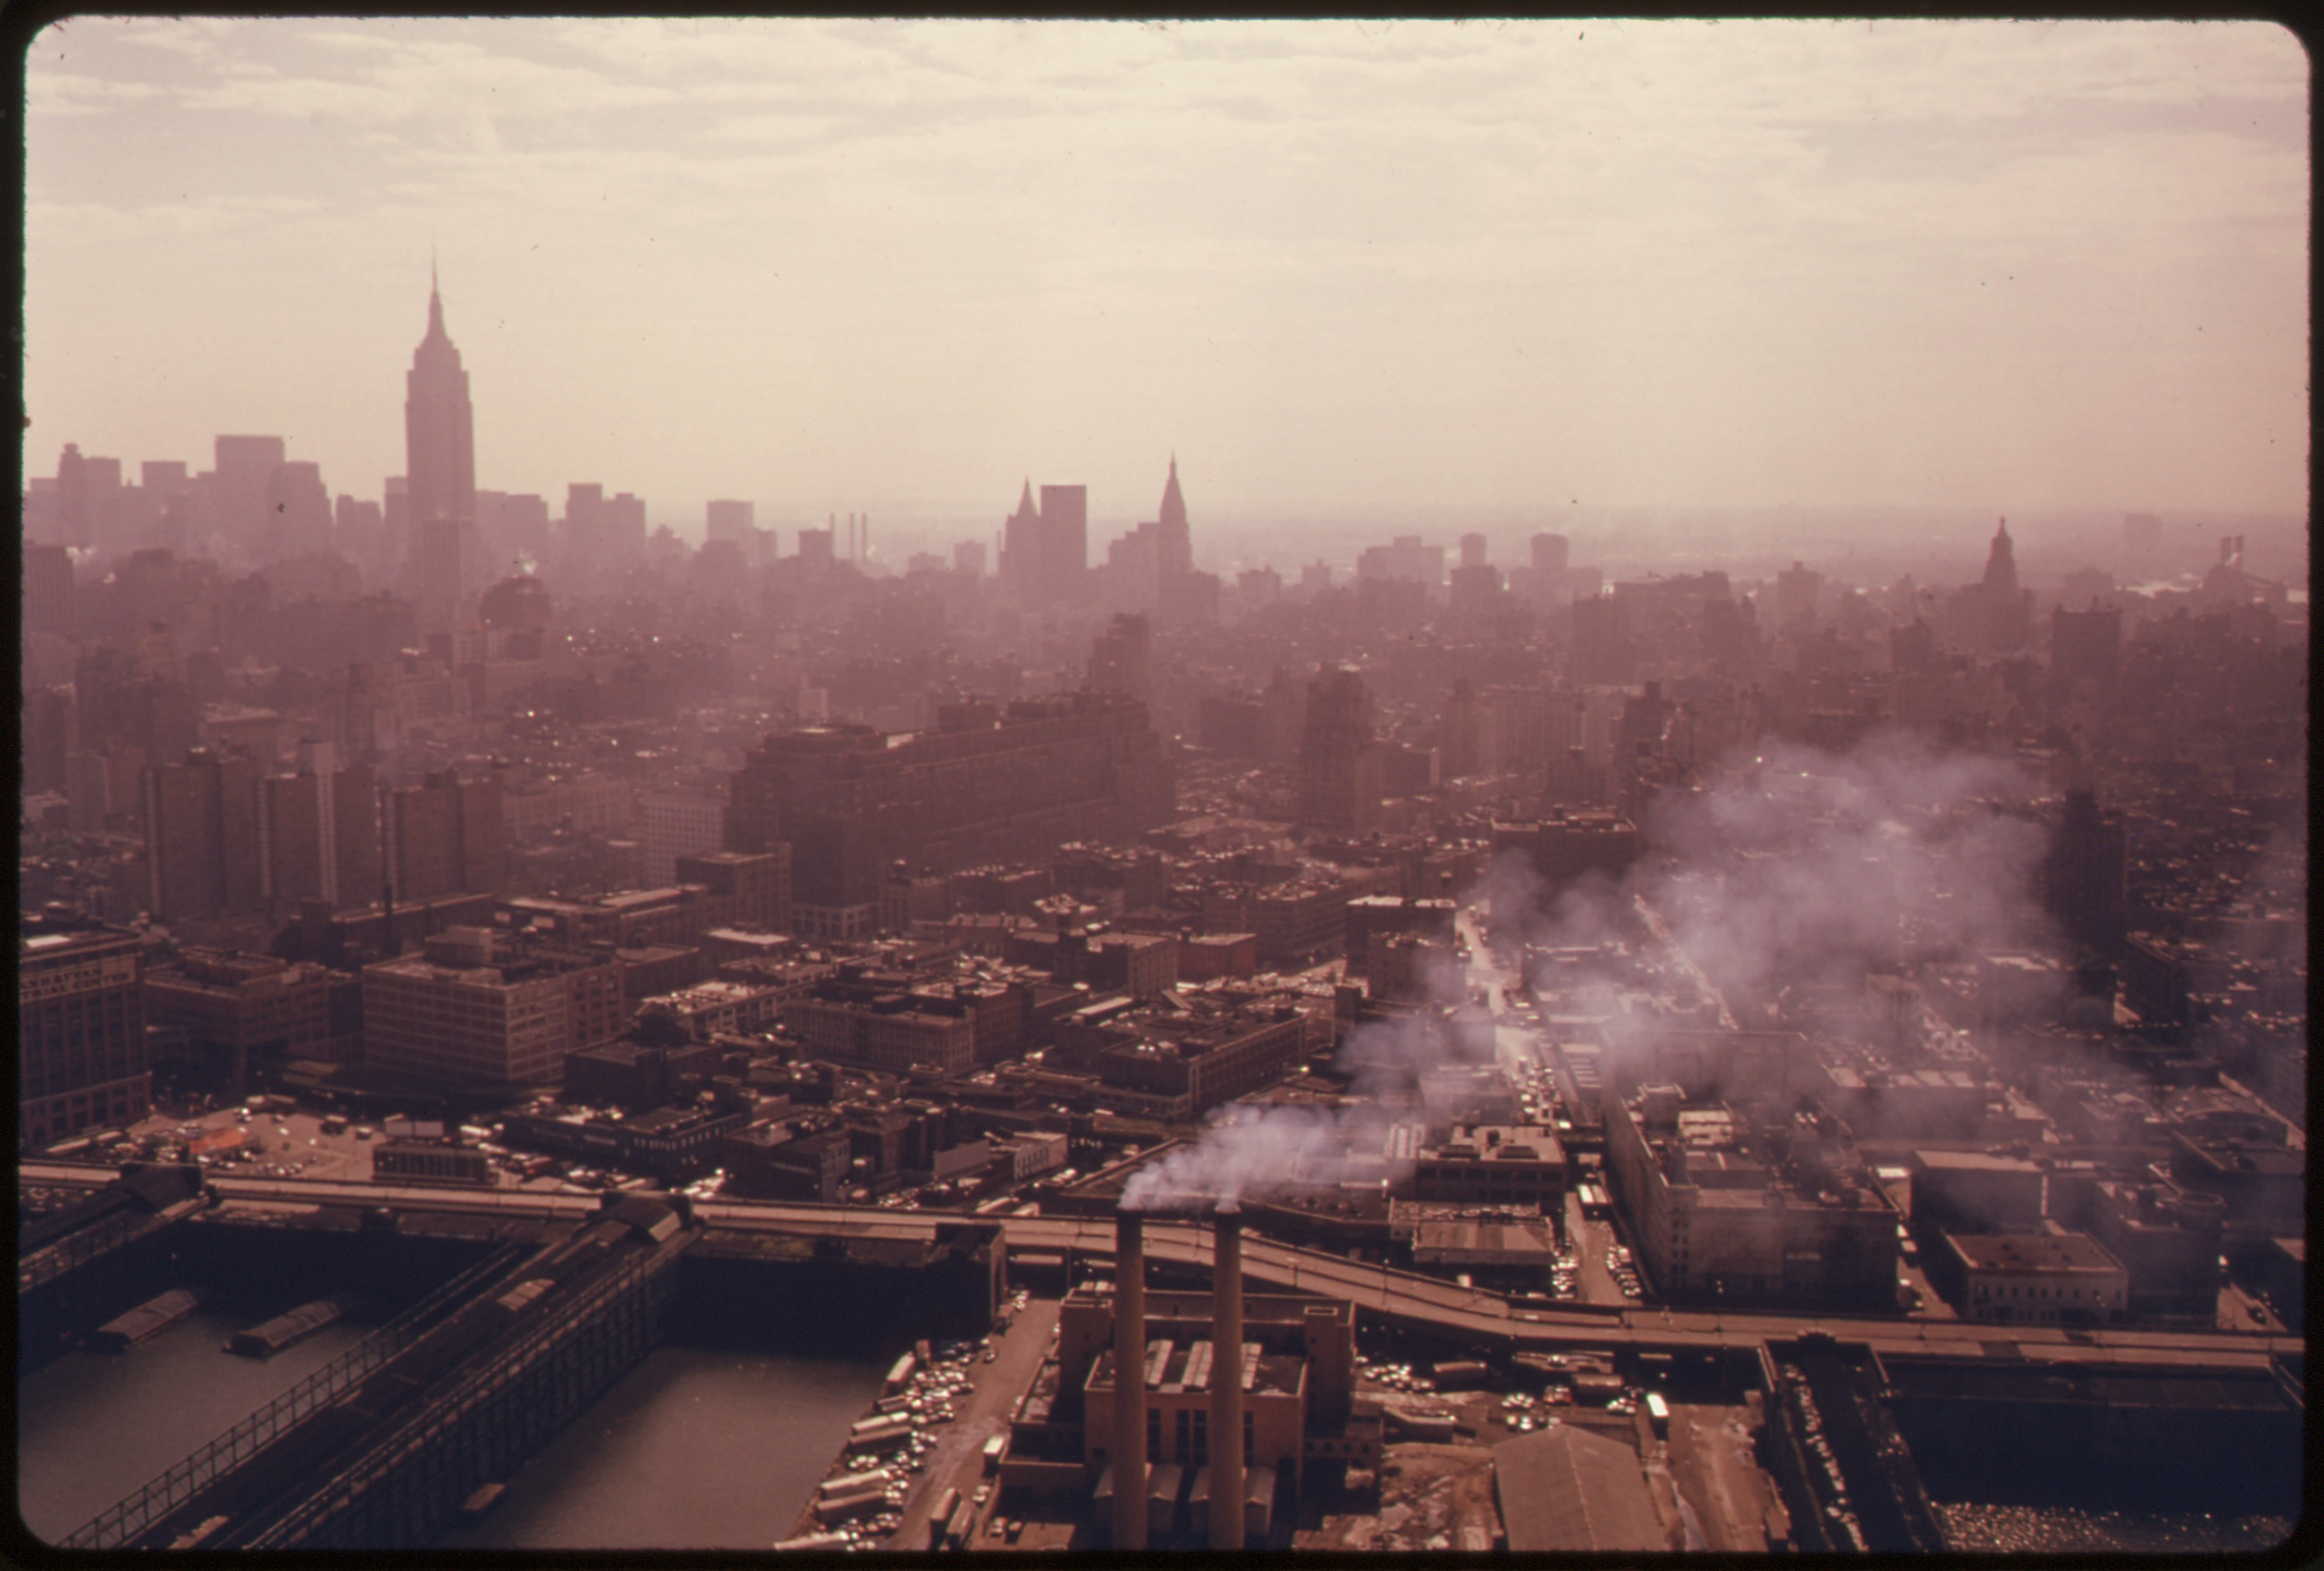 File:MANHATTAN, NEW YORK. TRANSPORTATION IN AN URBAN AND INDUSTRIAL AREA LIKE NEW YORK PRODUCES ...